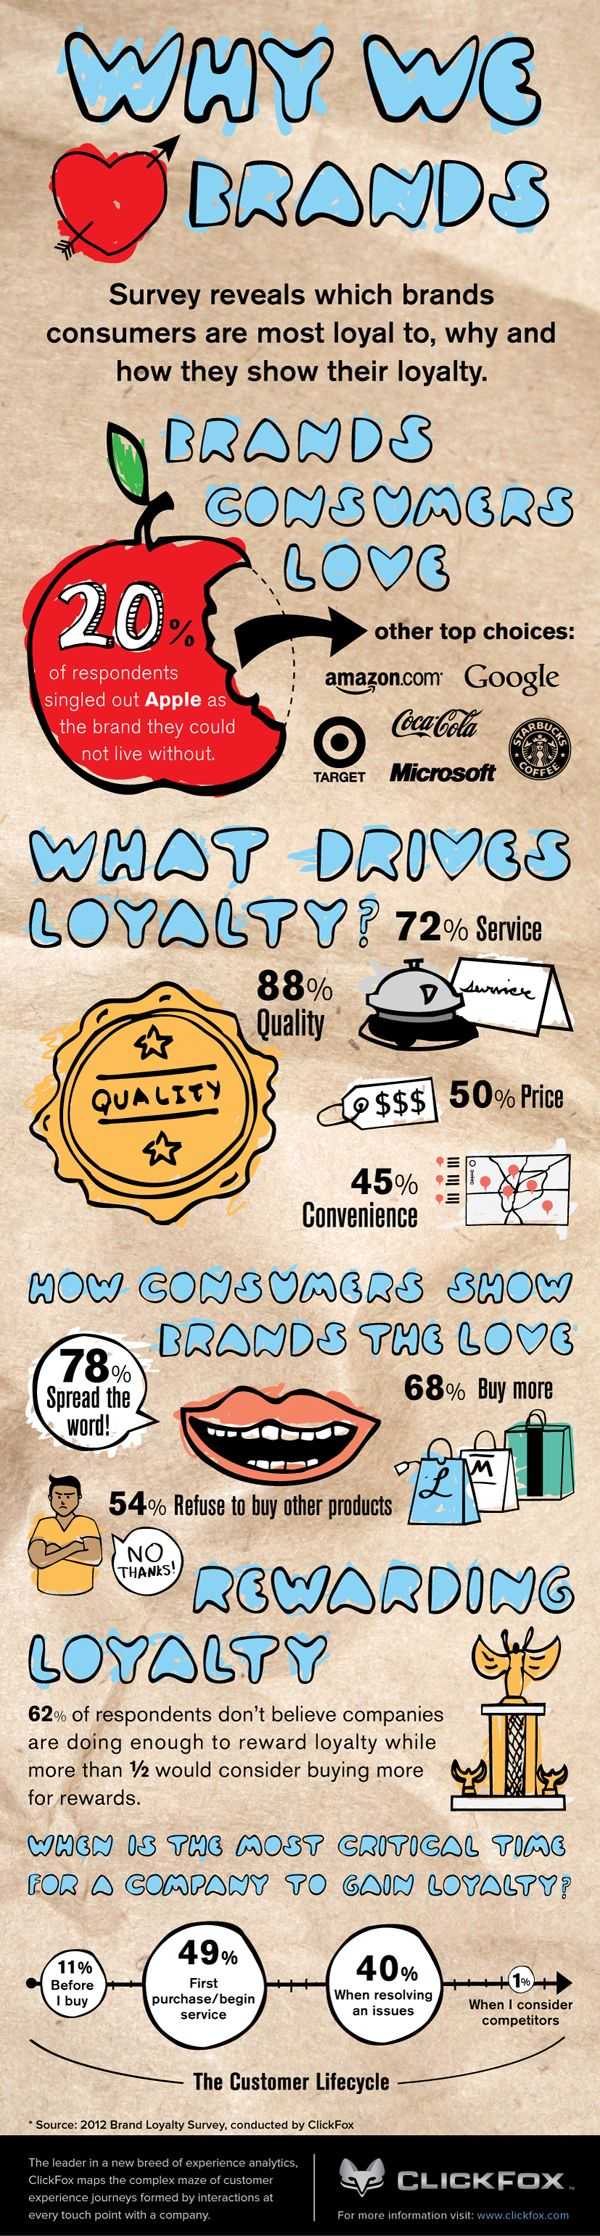 Brand consumers are most loyal to, why and how they show their loyalty